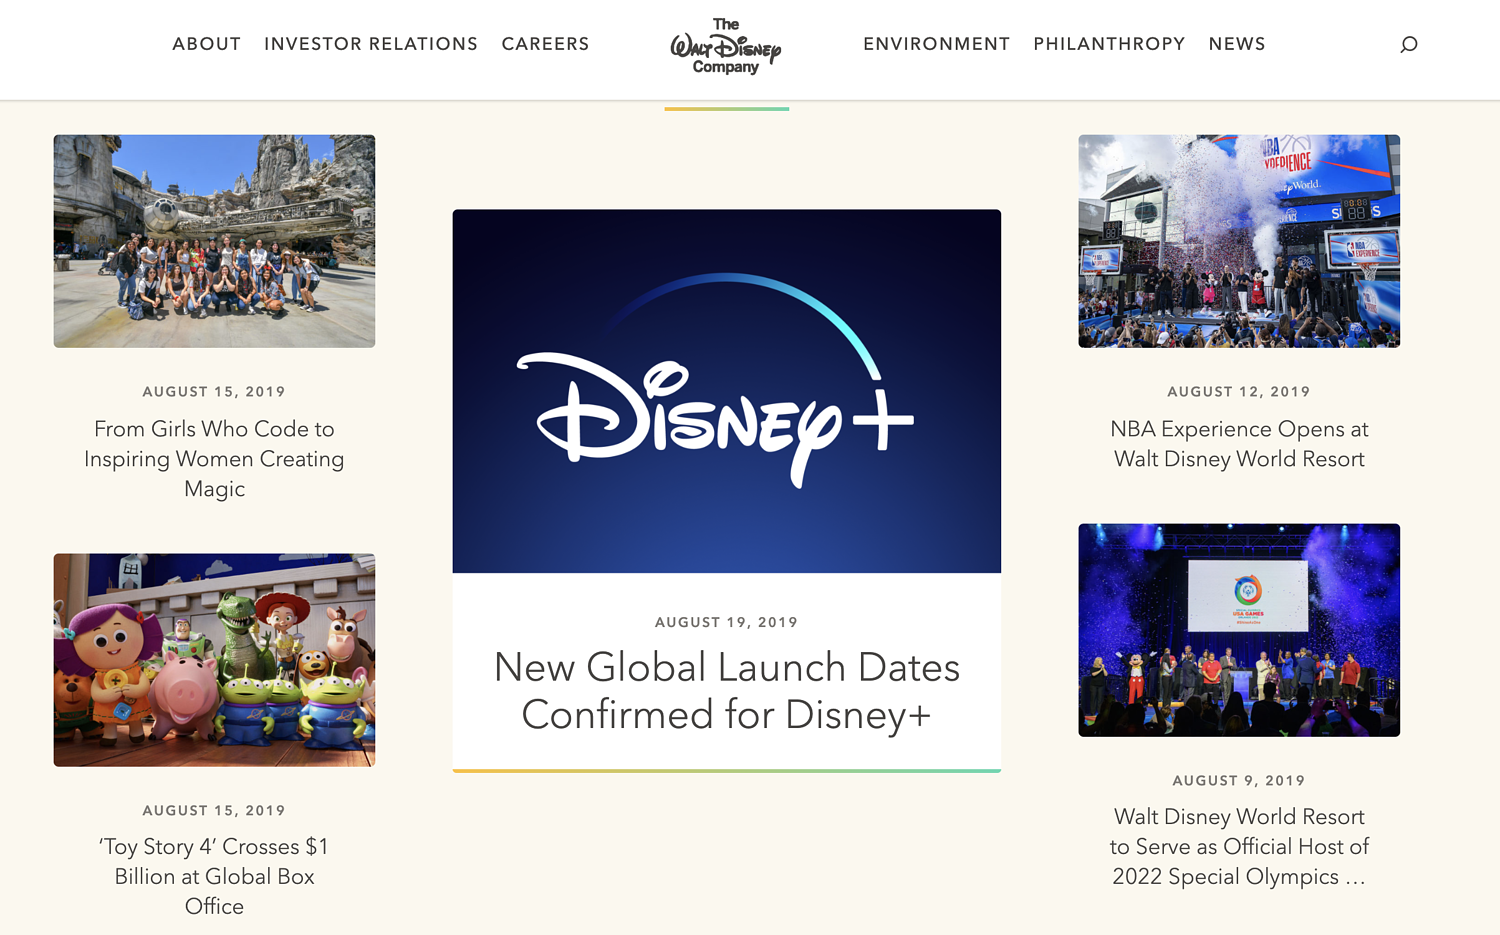 WordPress website example from Disney